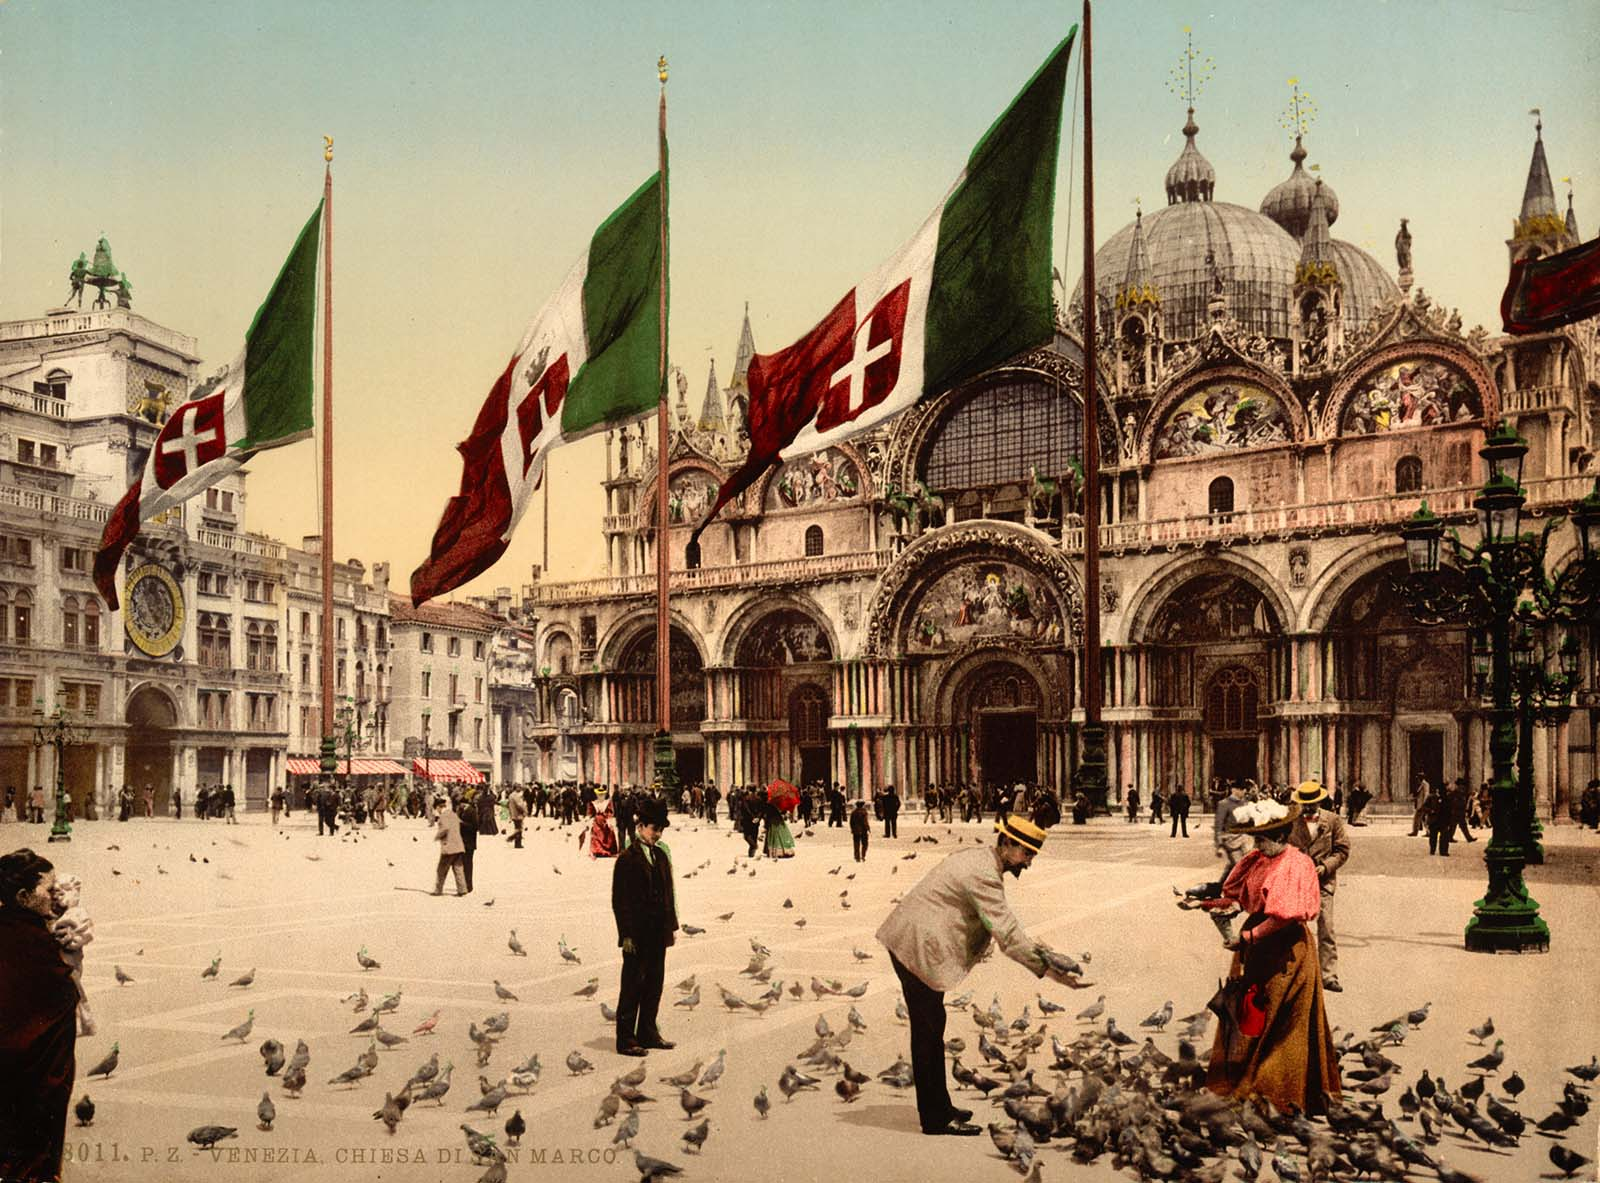 venice-in-beautiful-old-color-images-1890_23.jpg